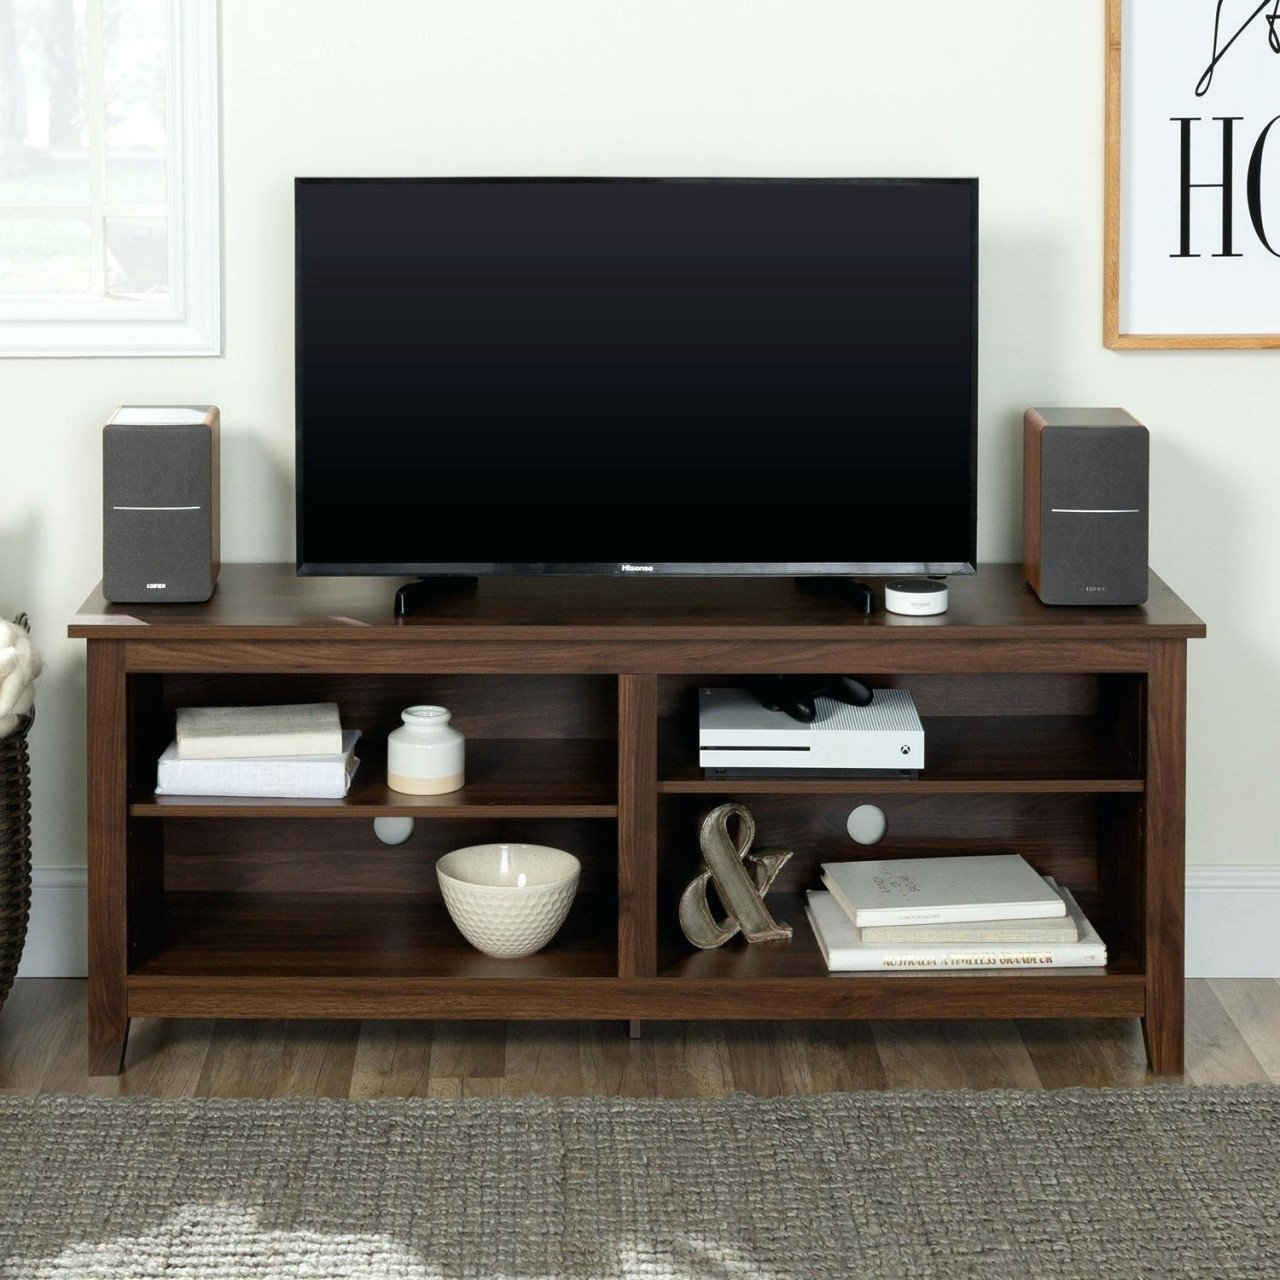 Tall Tv Stand for Bedroom Inspirational Corner Tv Stand Electric Fireplace – Fireplace Ideas